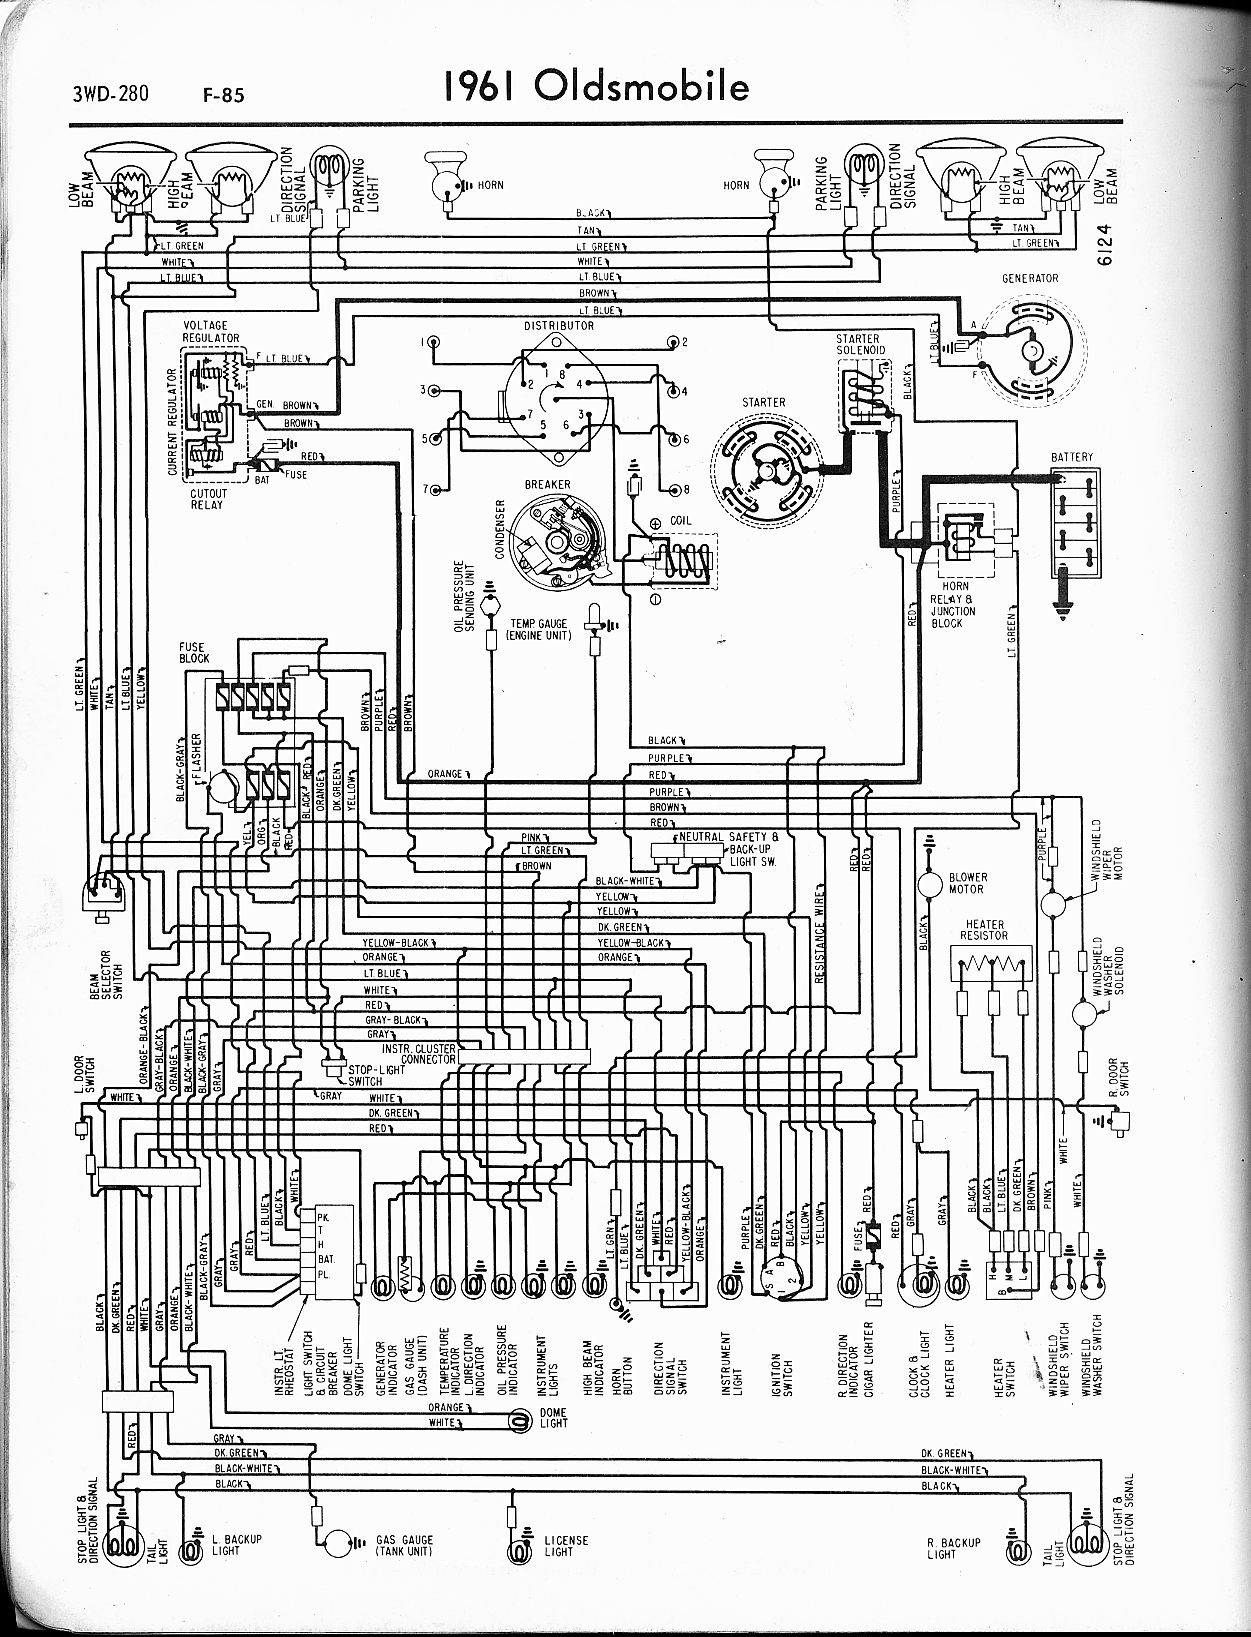 MWire5765 280 oldsmobile wiring diagrams the old car manual project Freightliner Power Window Wiring Diagram at sewacar.co